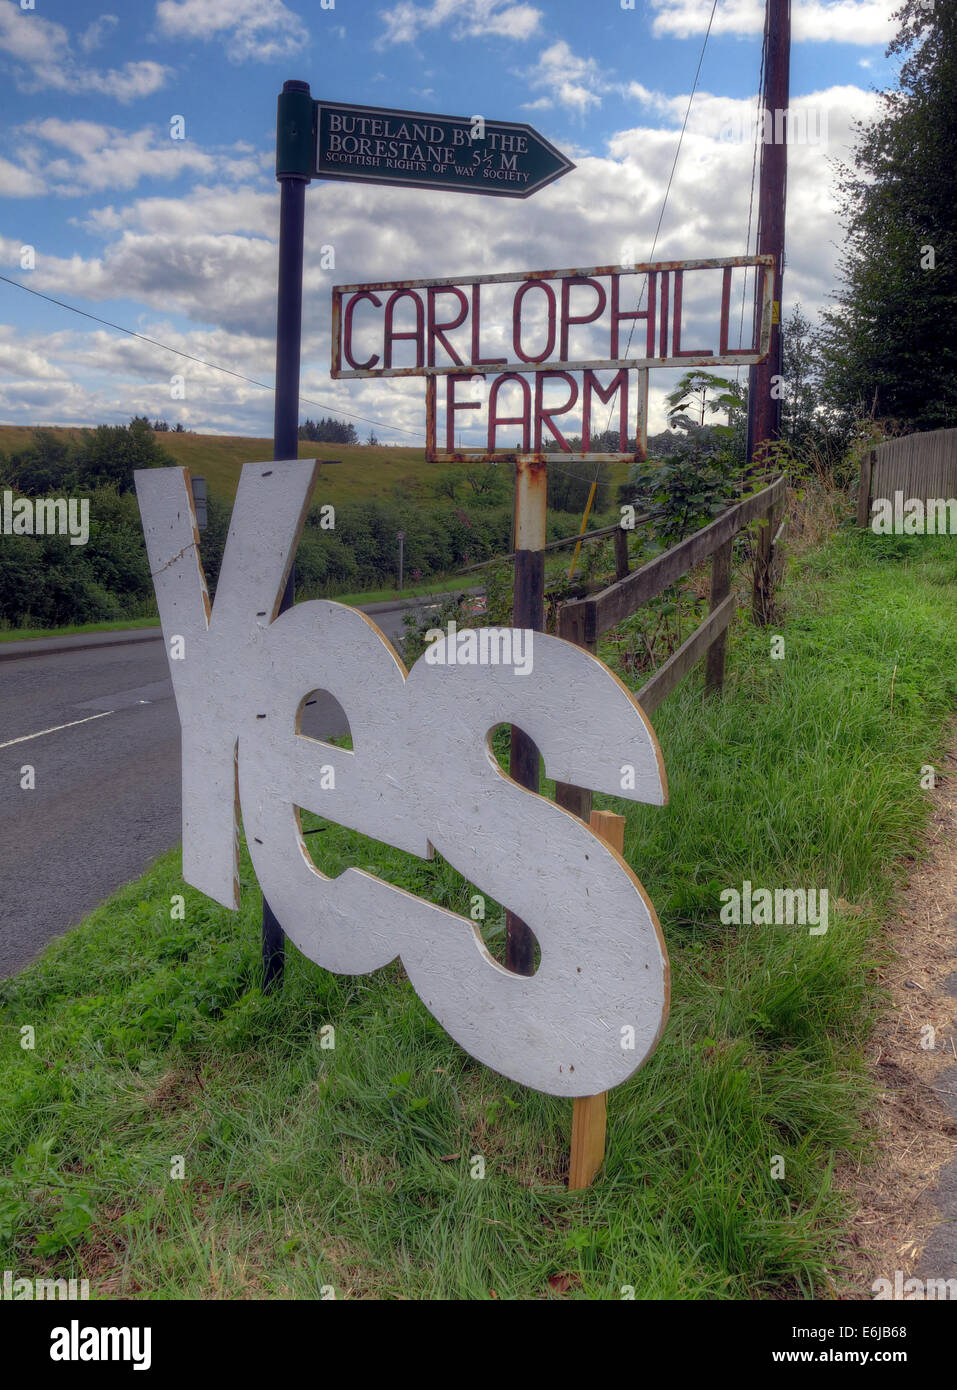 farm,Carlops,Scottish Borders,Scotland,September,2014,sunny,day,passion,to,govern,their,own,nation,country,independance,feeling,vote,voting,referenda,referendum,catalonia,spain,break,breakup,up,of,the,UK,GB,great,Britain,British,gotonysmith indyref #indyref,Scottish,SNP,independance party,independence,indyref,referendum,2nd,second